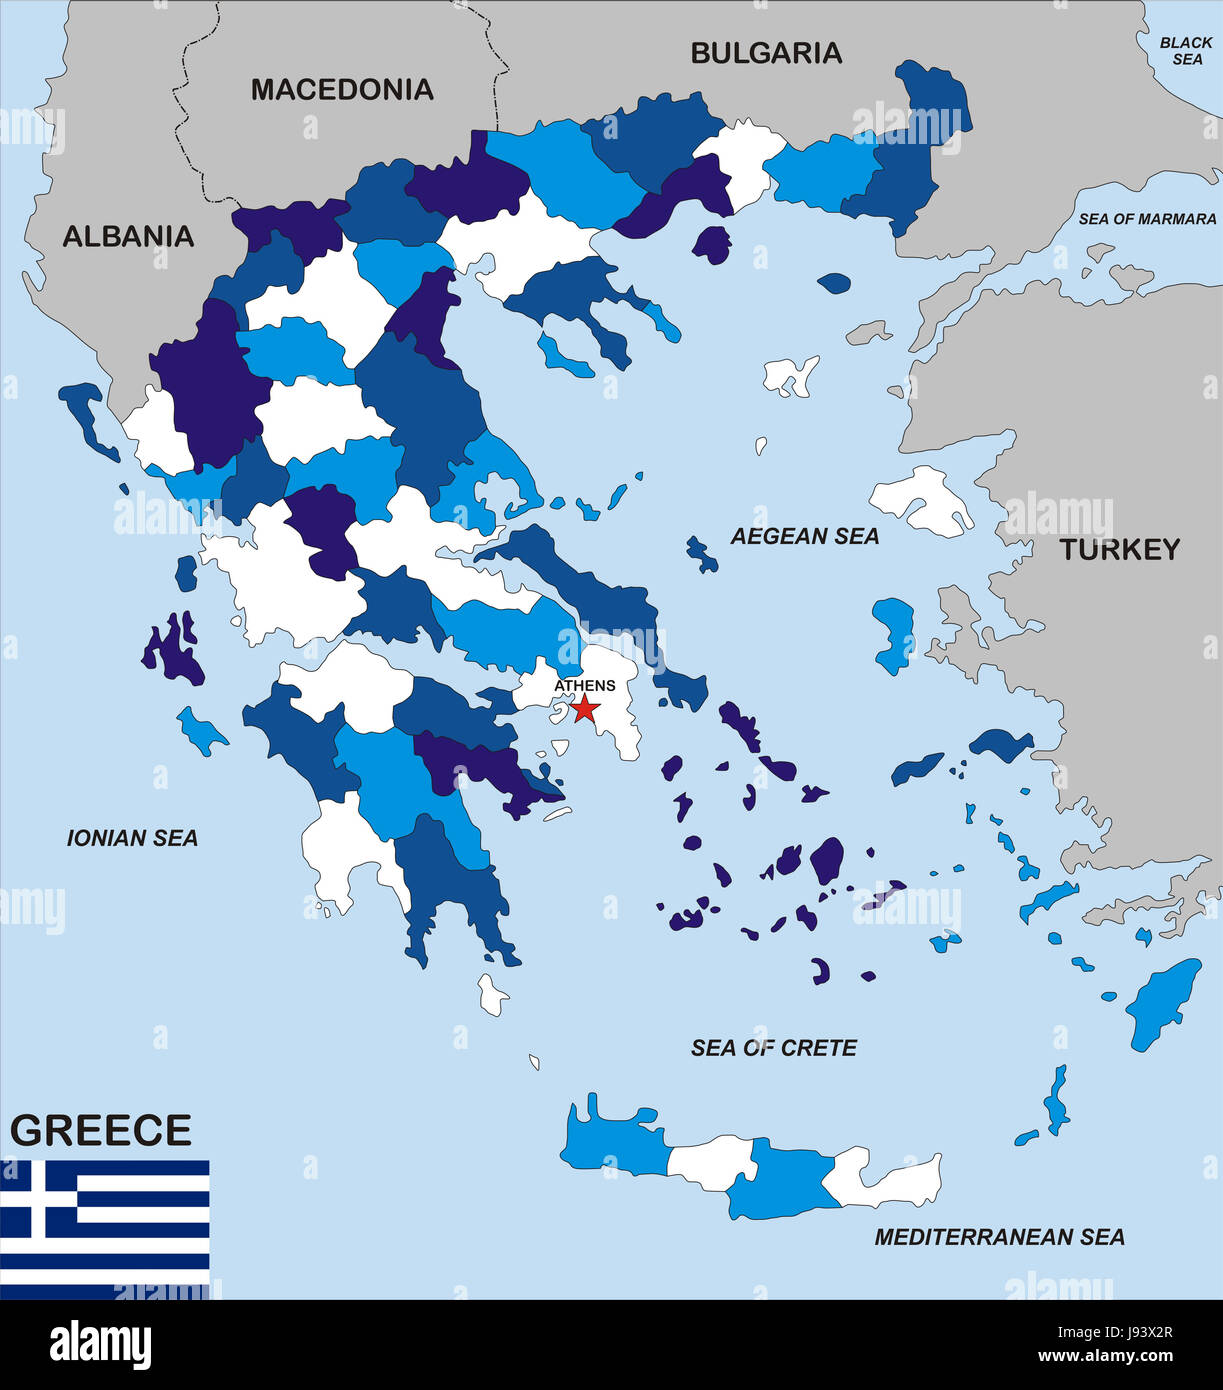 Greece map atlas map of the world travel political greece greece map atlas map of the world travel political greece flag country gumiabroncs